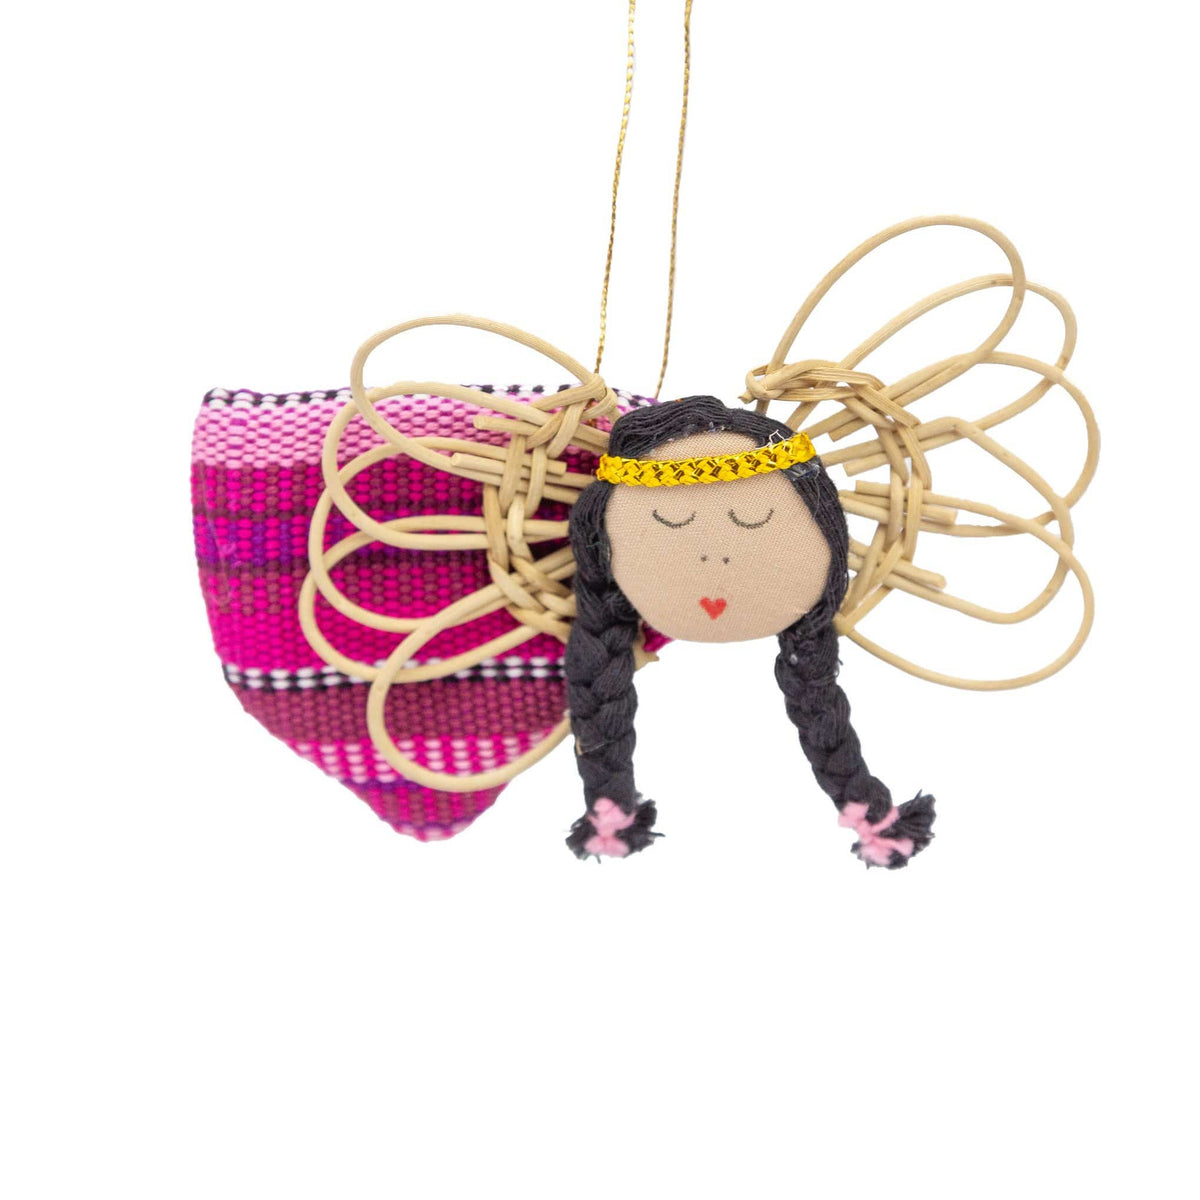 Flying Angel Ornament - Pink